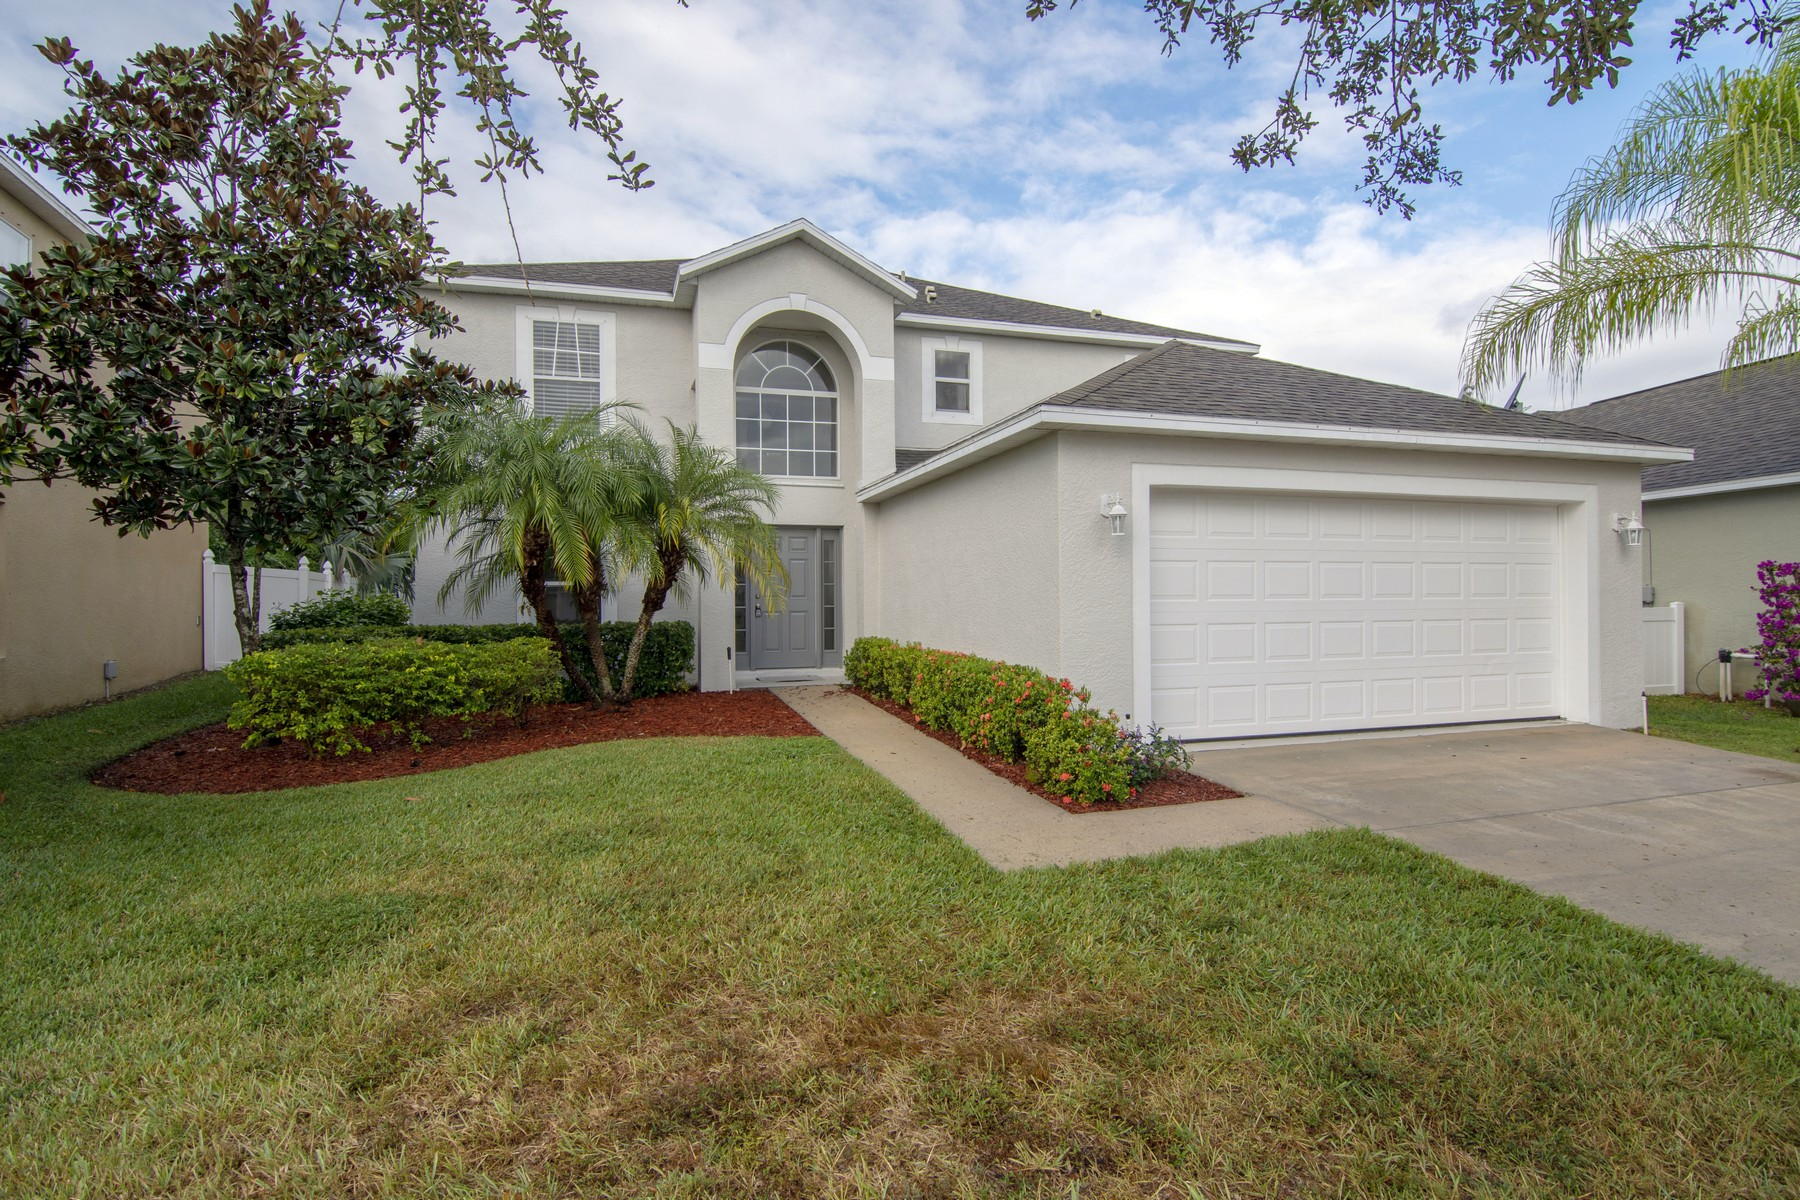 Single Family Home for Sale at Fantastic, Spacious Updated Four Bedroom Home Plus Den 185 Stony Point Drive Sebastian, Florida 32958 United States